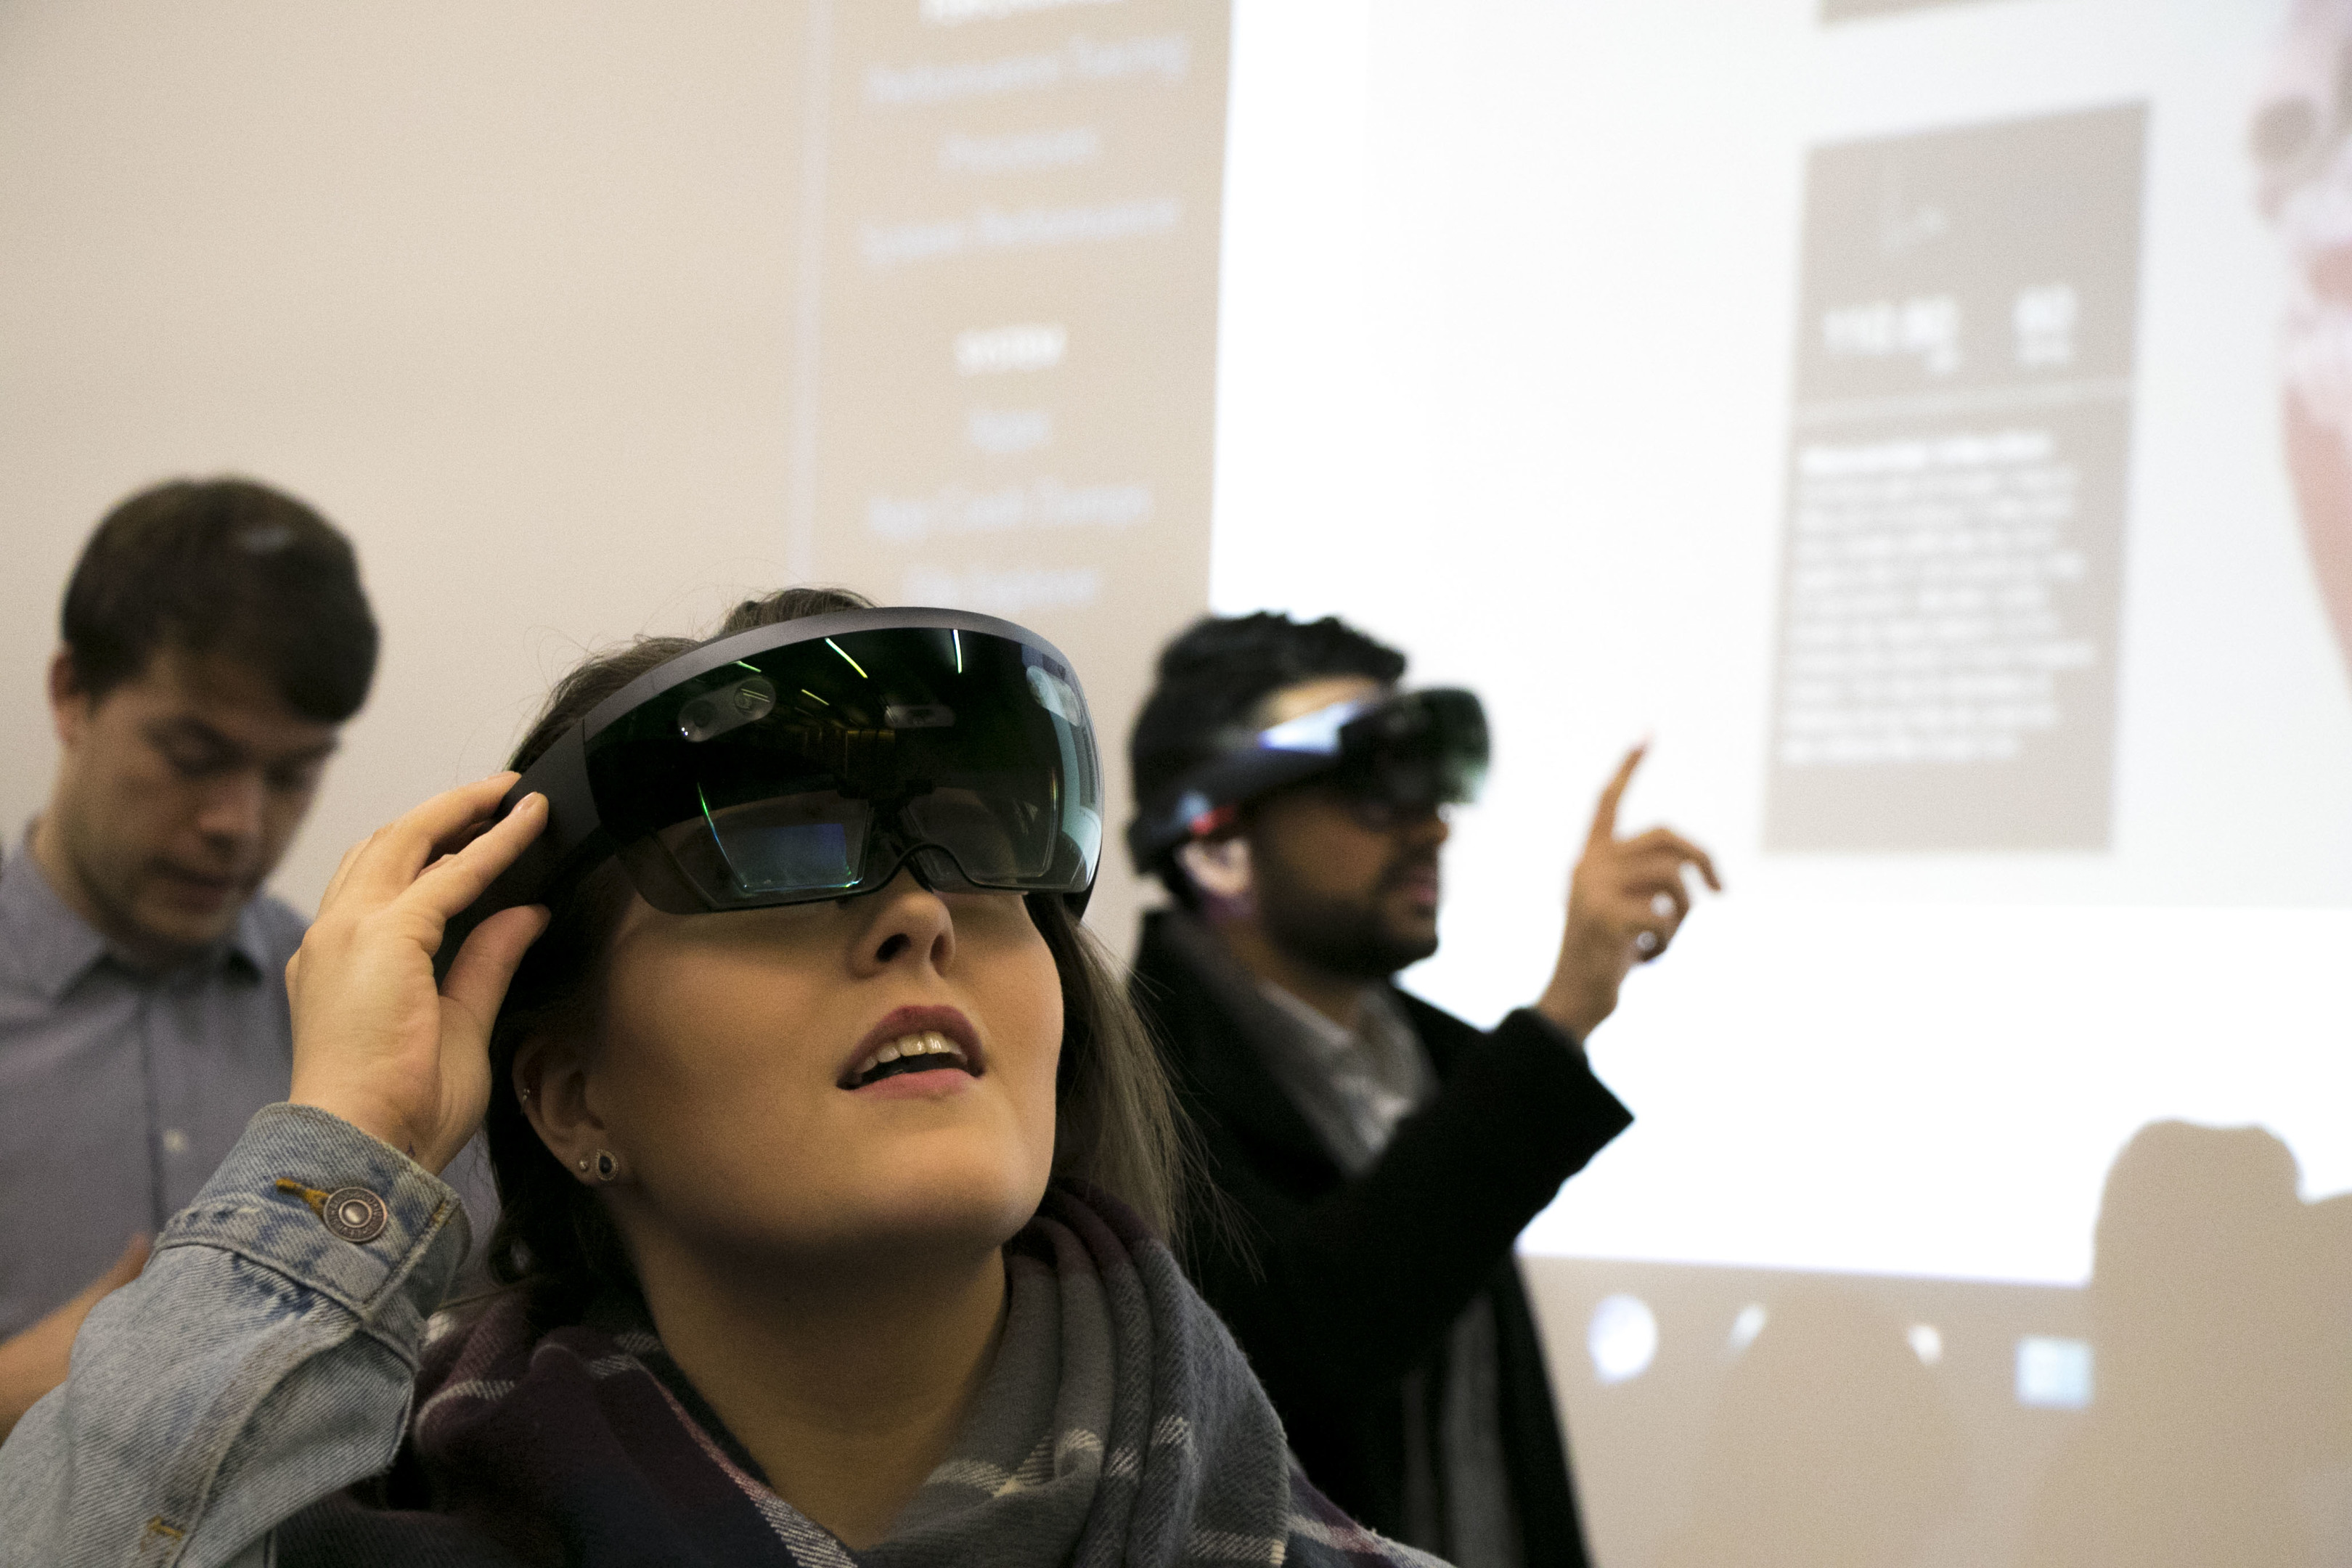 A student uses augmented reality for the first time